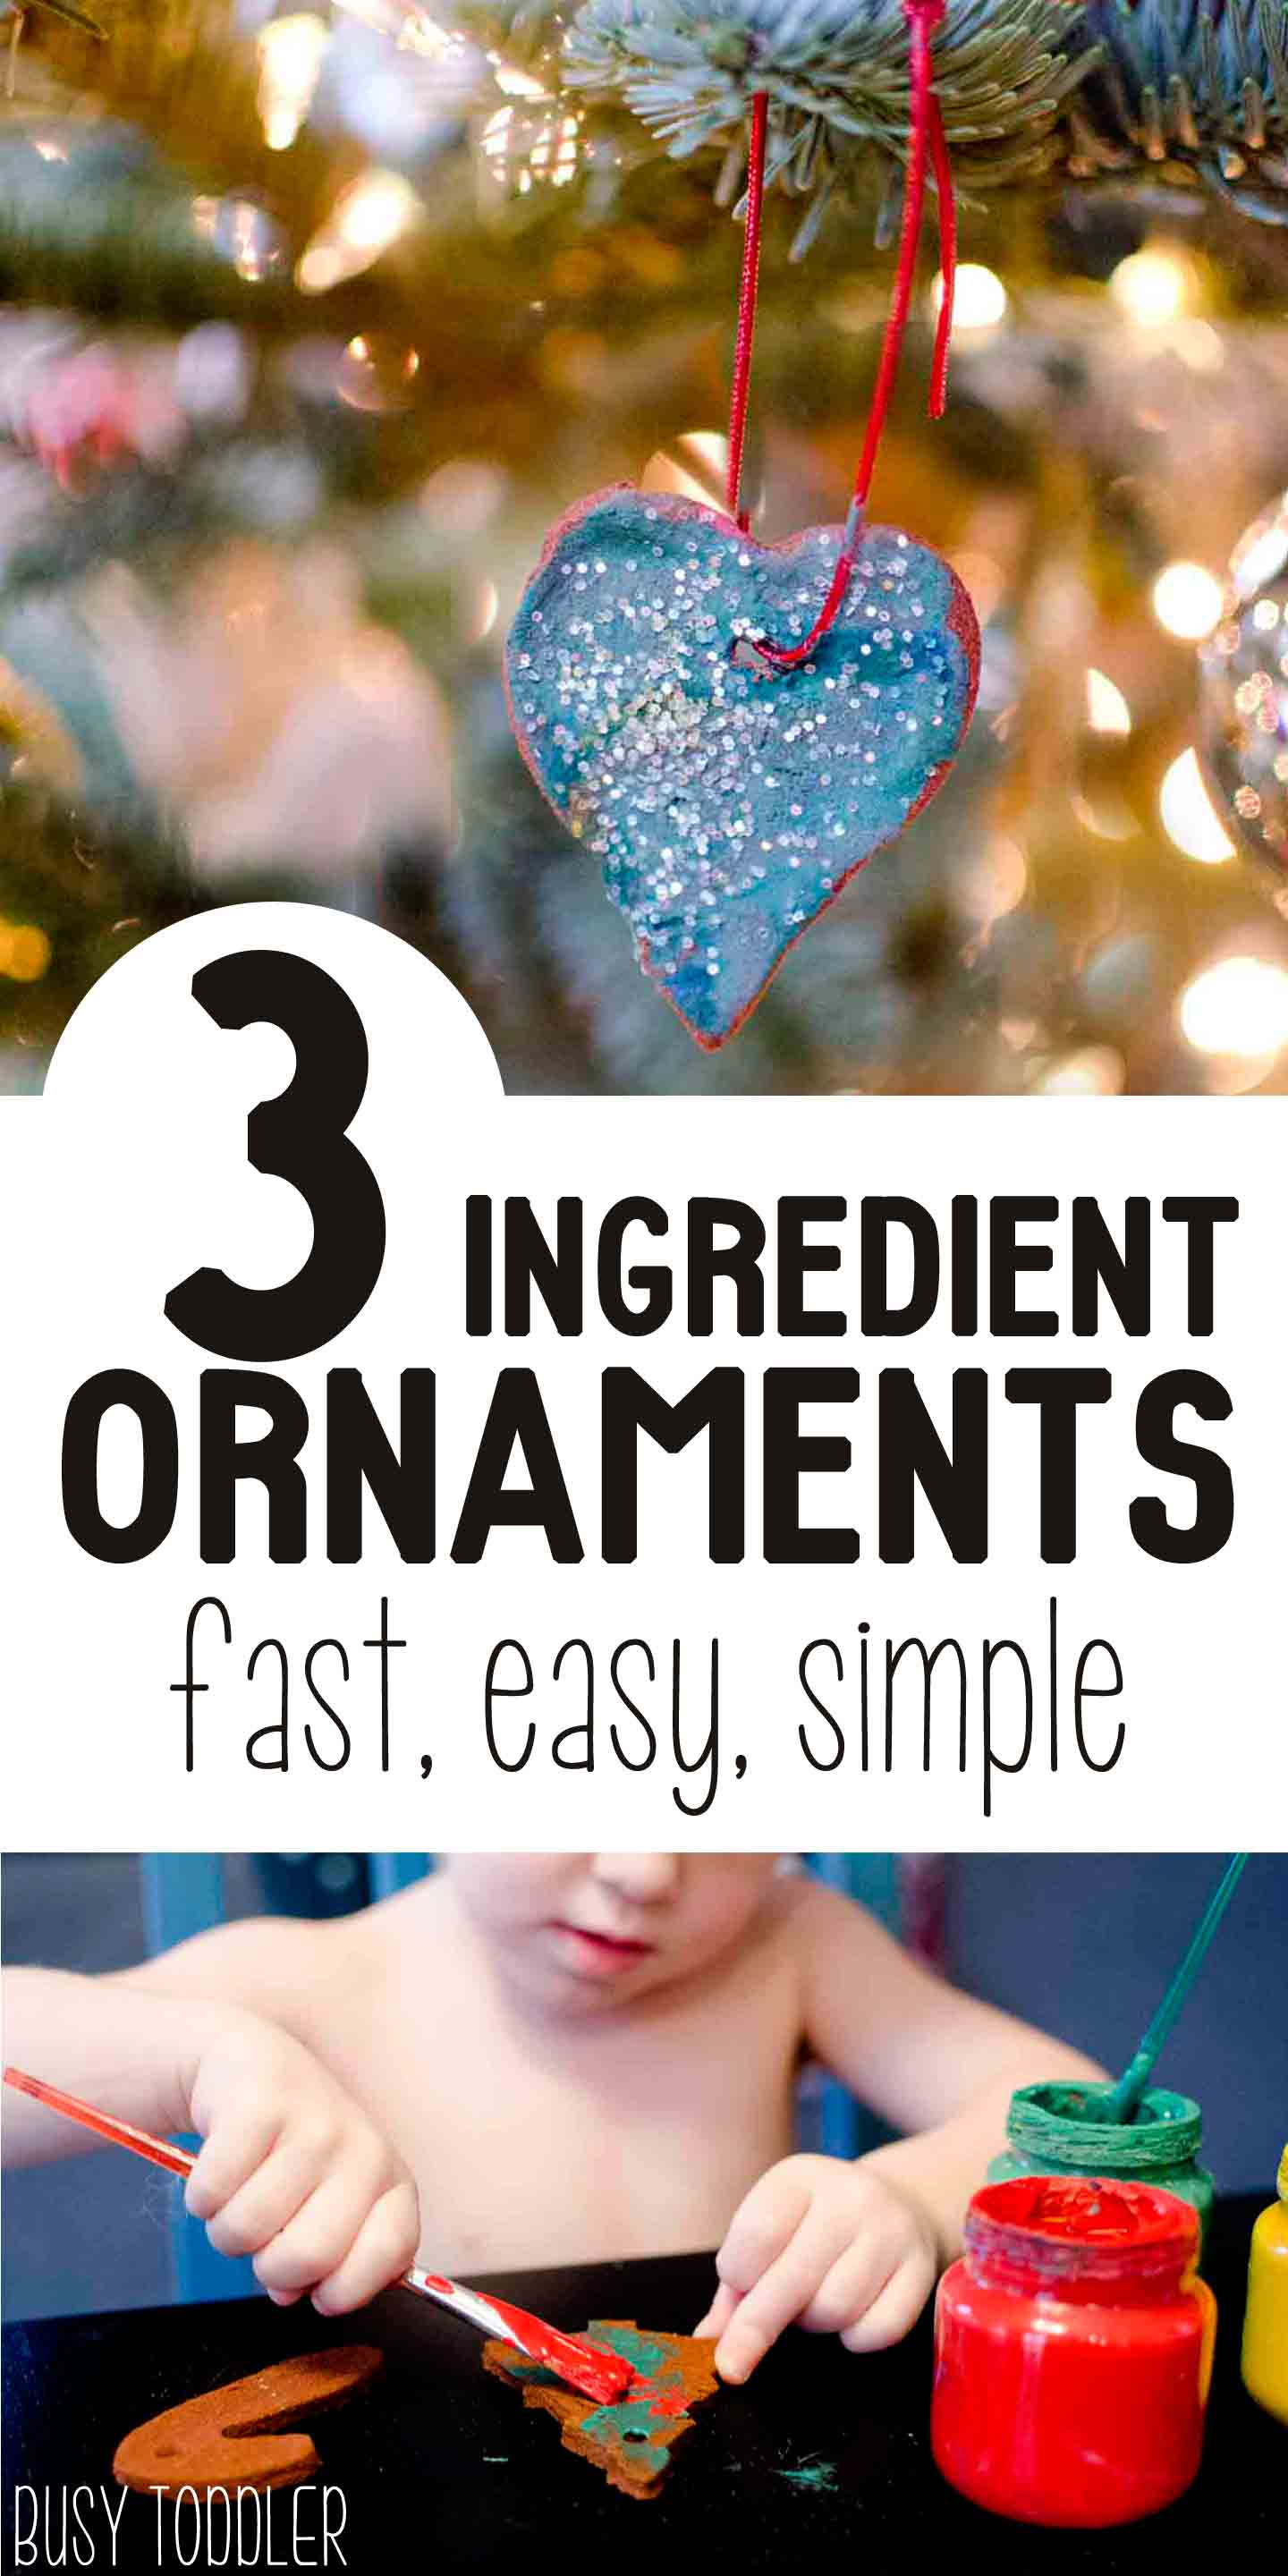 EASY CHRISTMAS ORNAMENTS: A perfect quick toddle Christmas activity! Making ornaments is so easy with this three ingredient recipe!